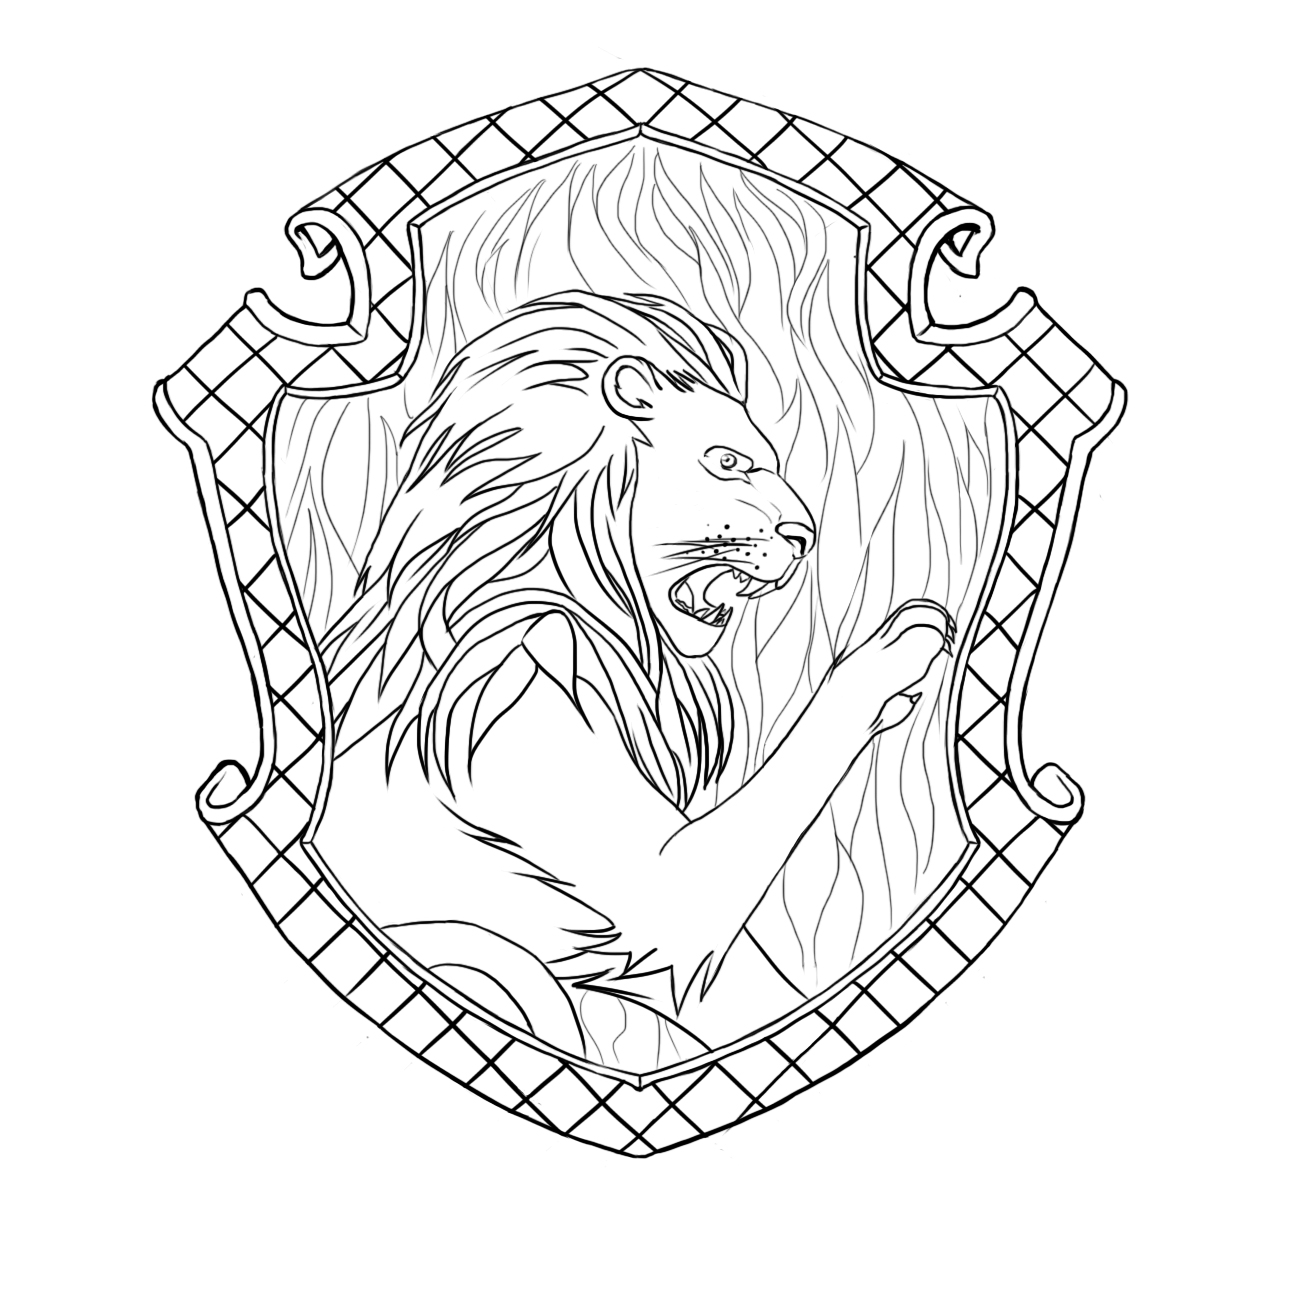 harry potter badge coloring pages | Gryffindor Badge Coloring Page Coloring Pages